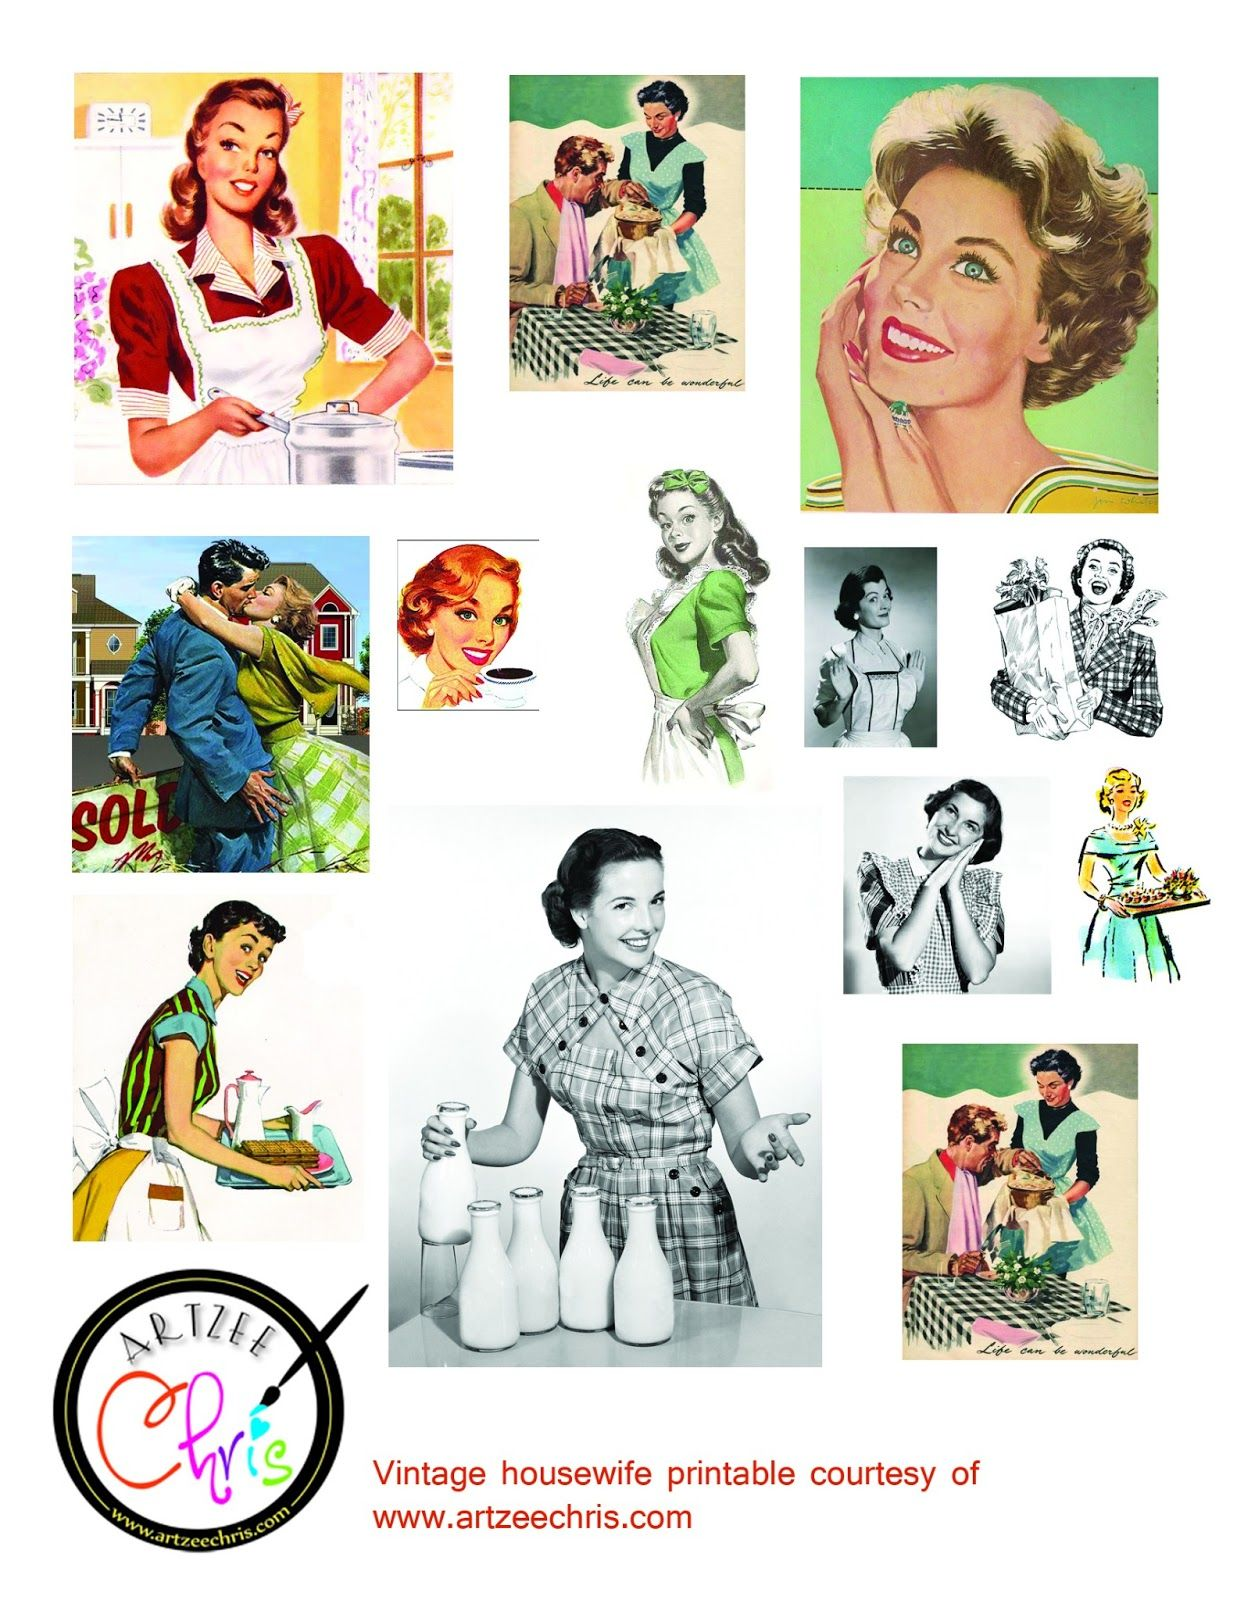 The Artzee Blog Free Retro Vintage 1950s Housewife Printable Vintage Housewife Retro Printables Retro Housewife